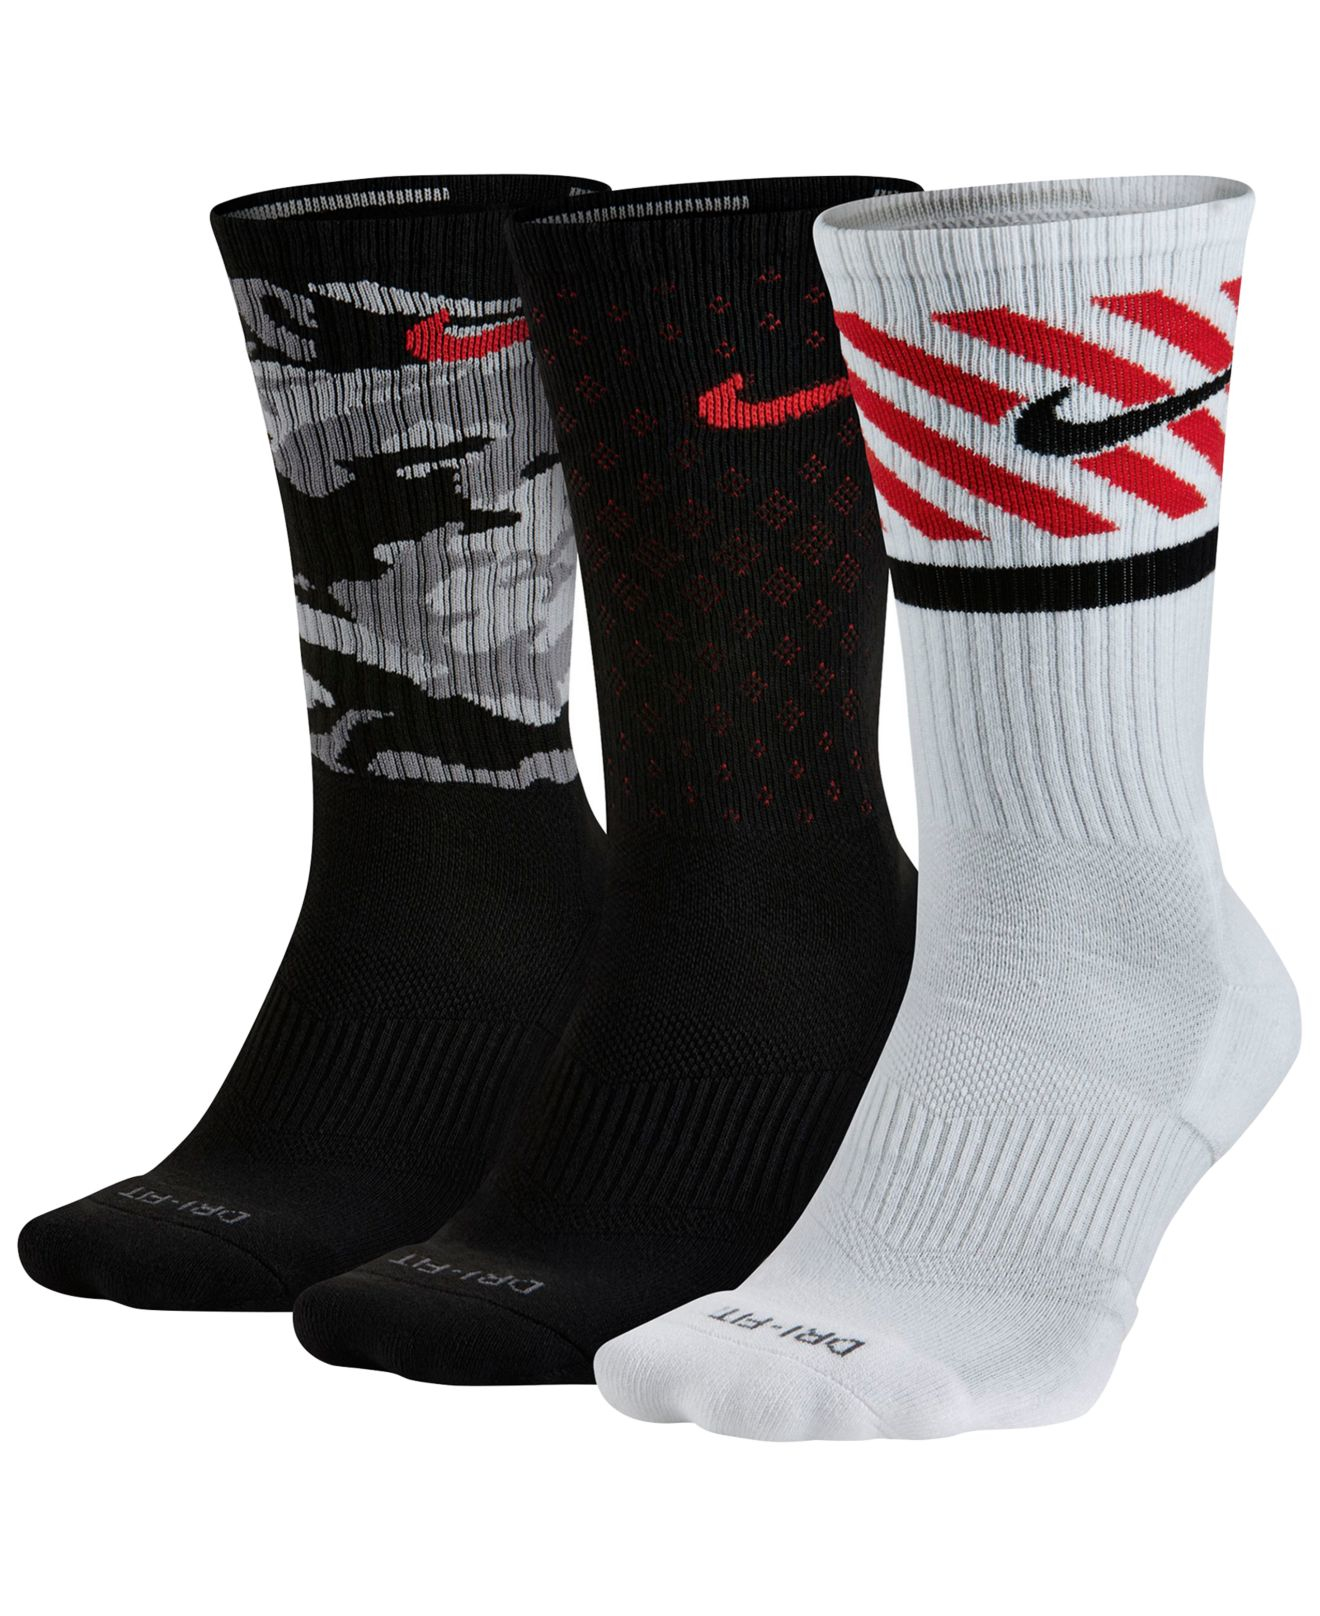 Nike Dri Fit Fly Crew Pack Sports Socks 3 Pack Red, White